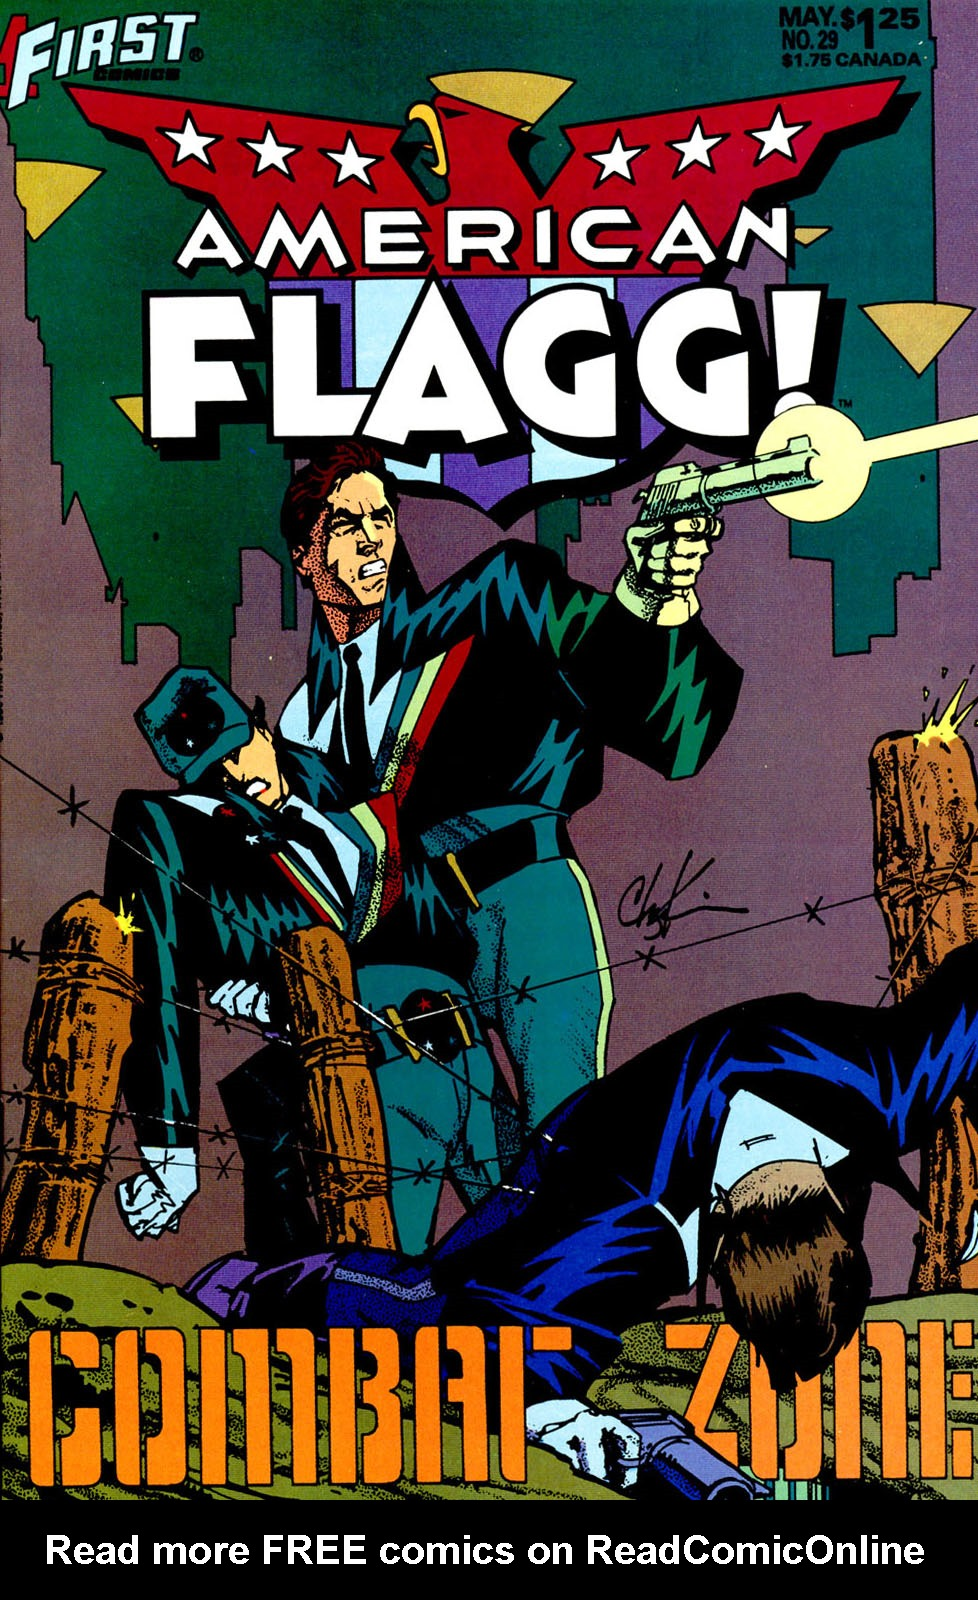 Read online American Flagg! comic -  Issue #29 - 1